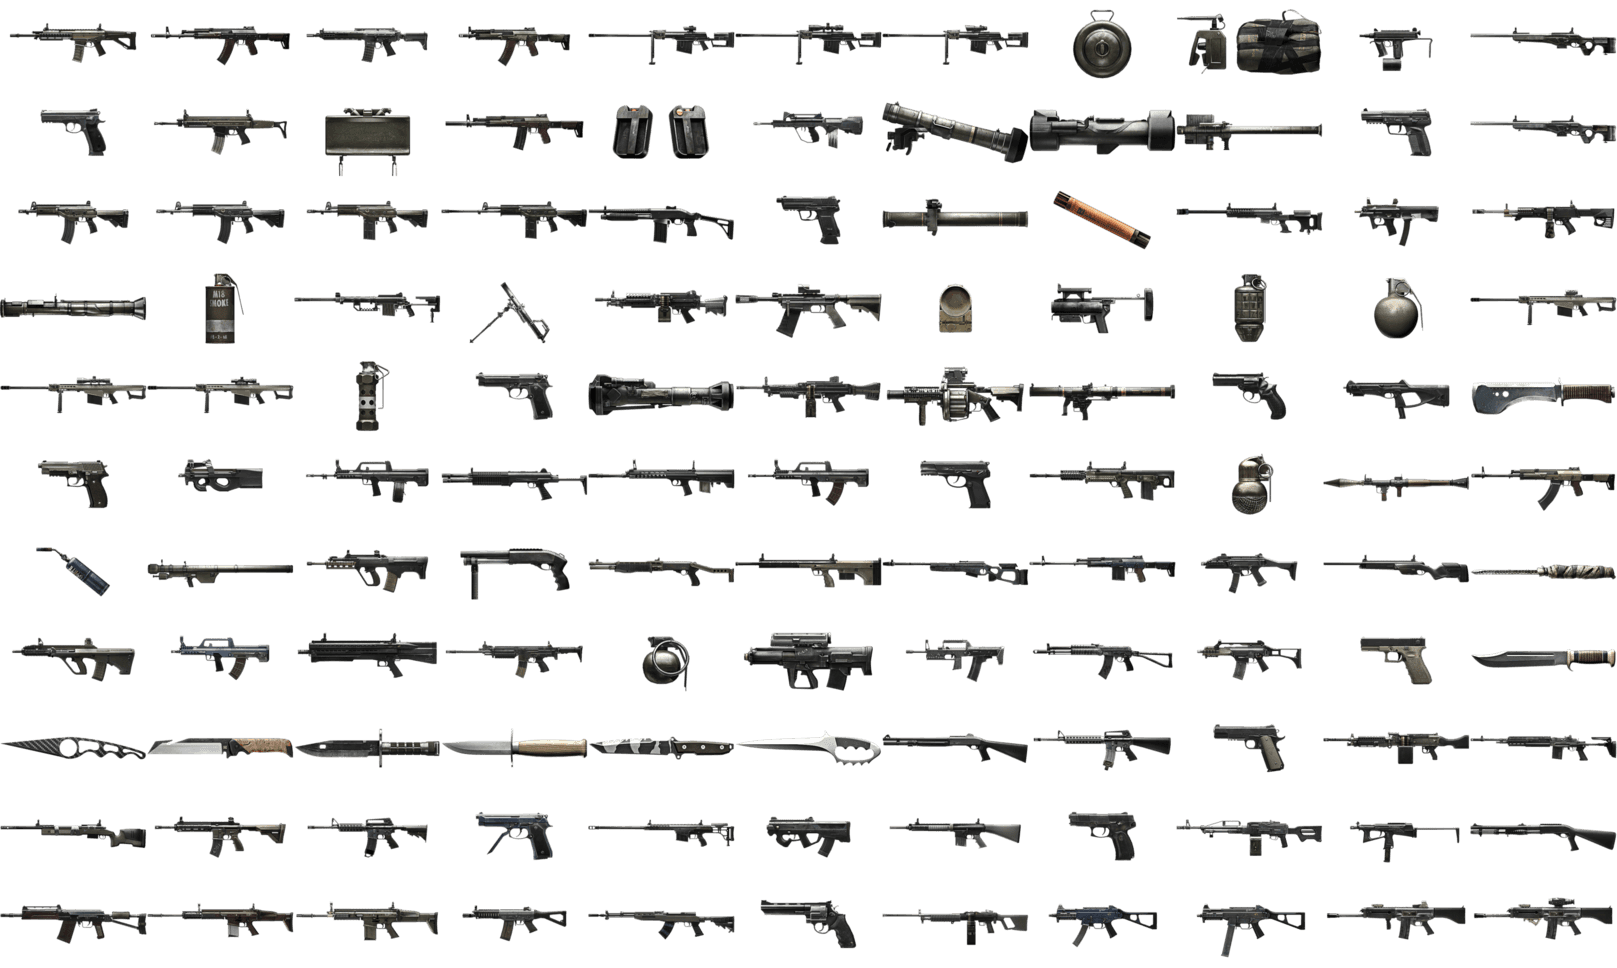 Awyman13/All BF4 Weapons